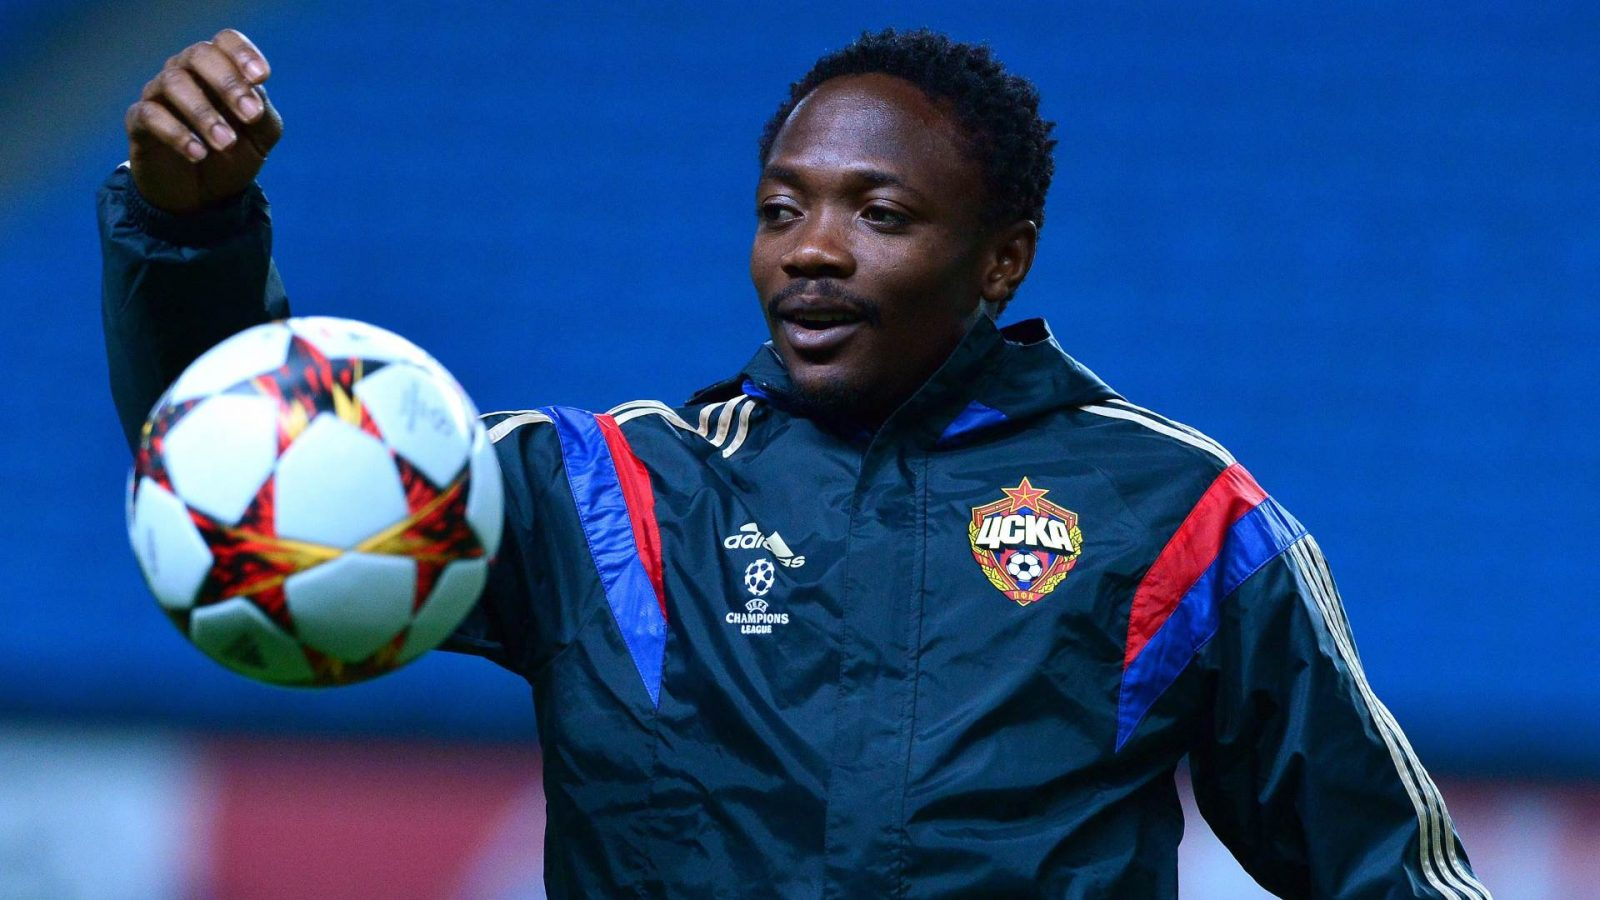 Ahmed Musa graczem Leicester City